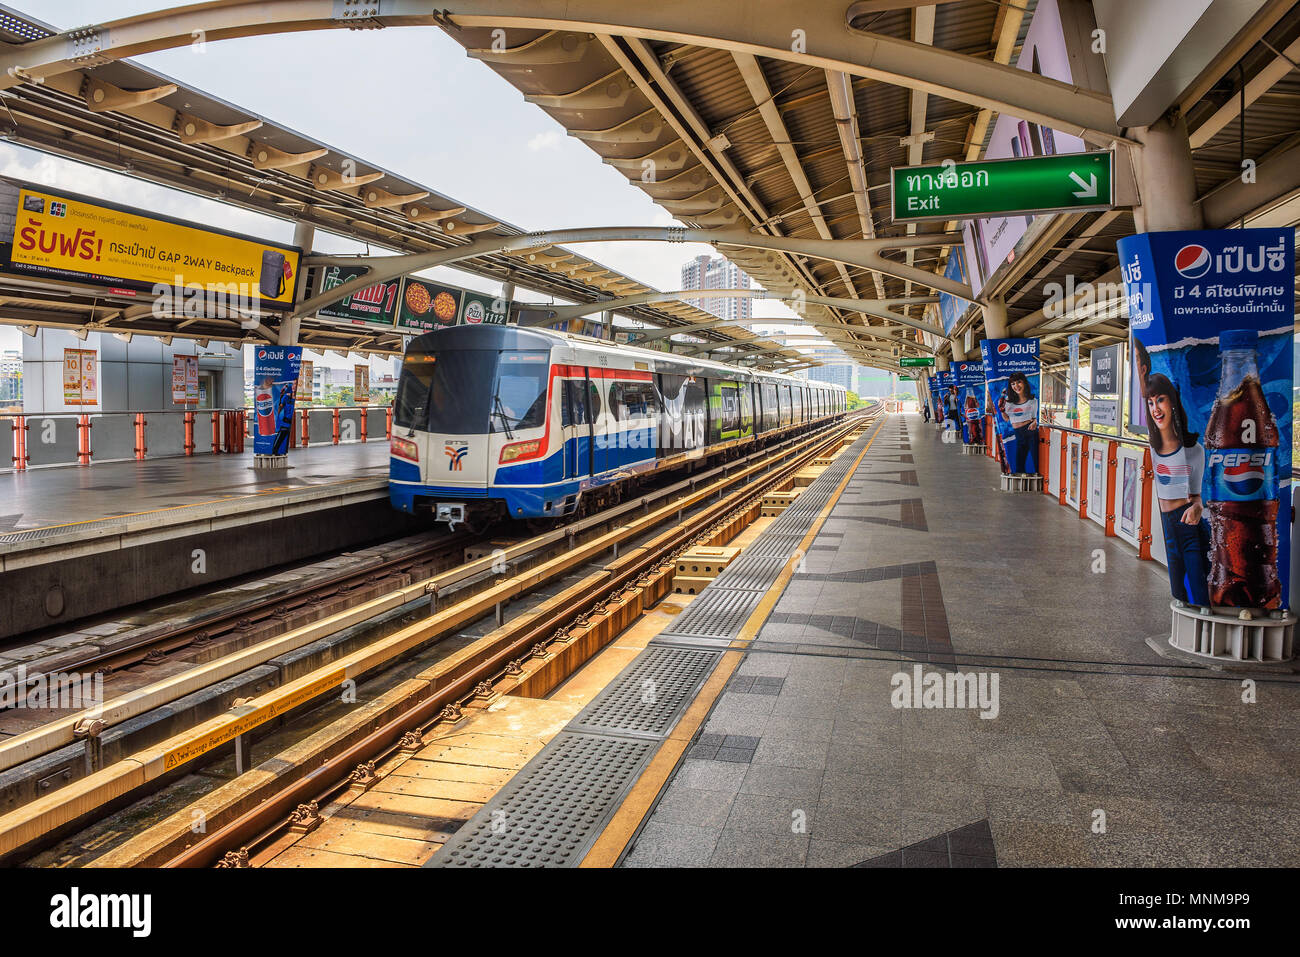 Train at Skytrain Station in Bangkok Stock Photo